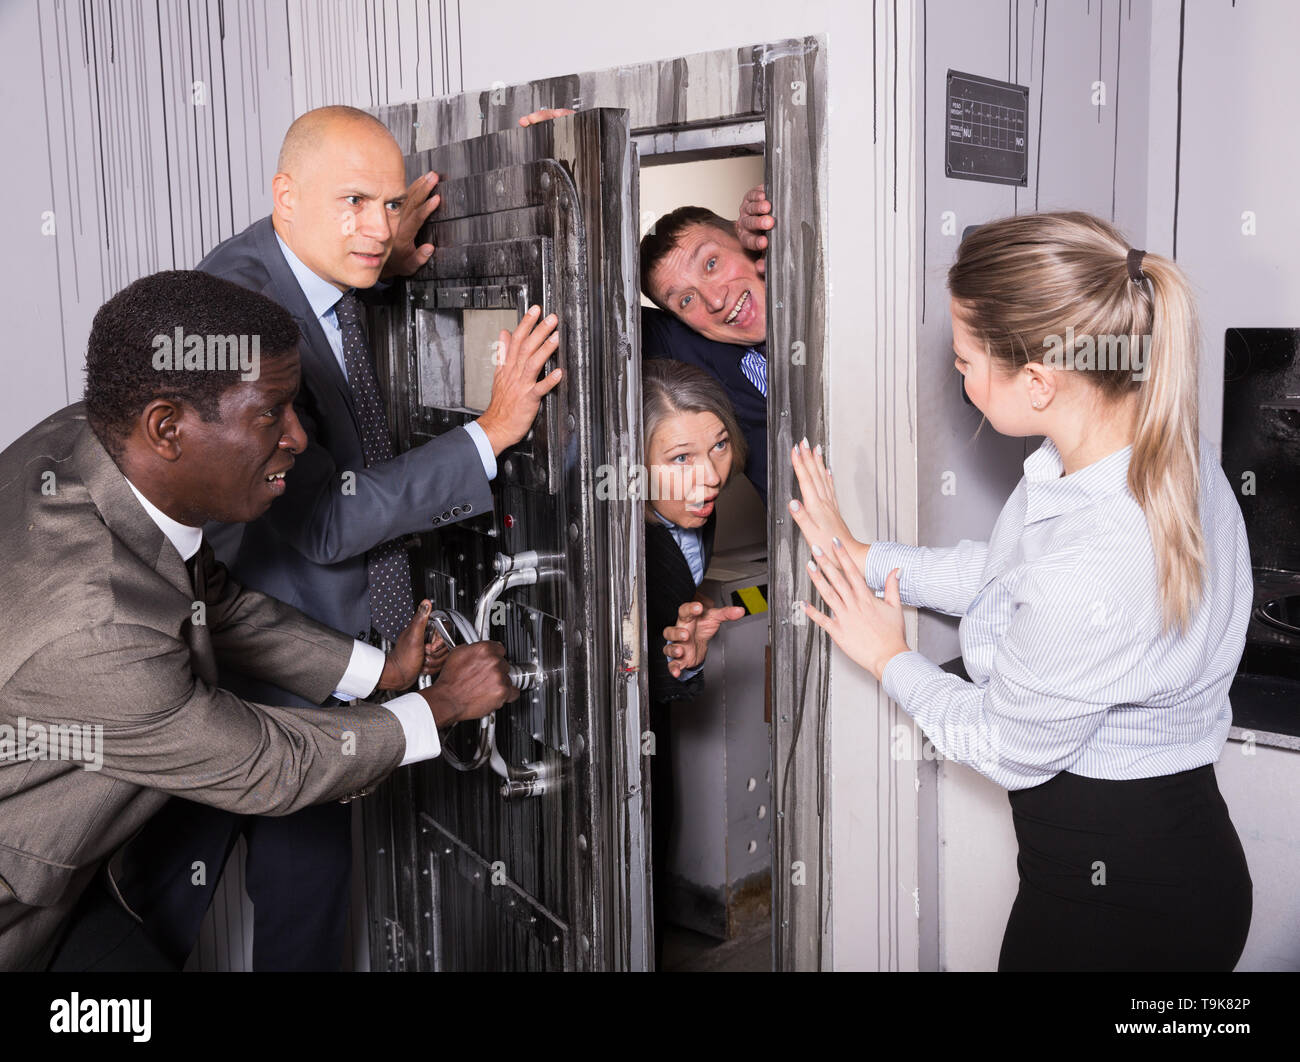 Businesspeople having fun on corporate event in quest room stylized as underground shelter. With expression of panic they holding door so others will  - Stock Image